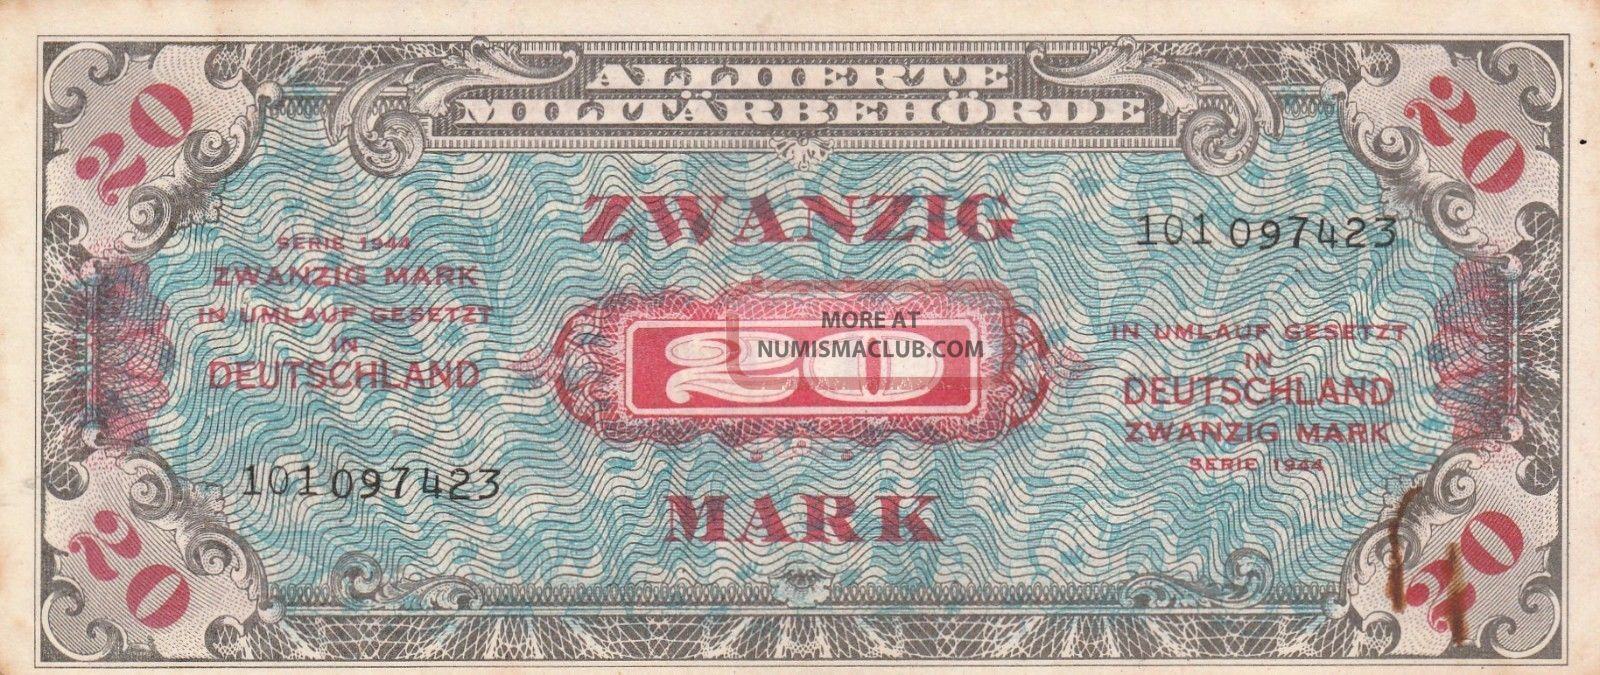 Germany - Wwii - Allied Military Currency (amc) 20 Mark Note - 1944 - Europe photo